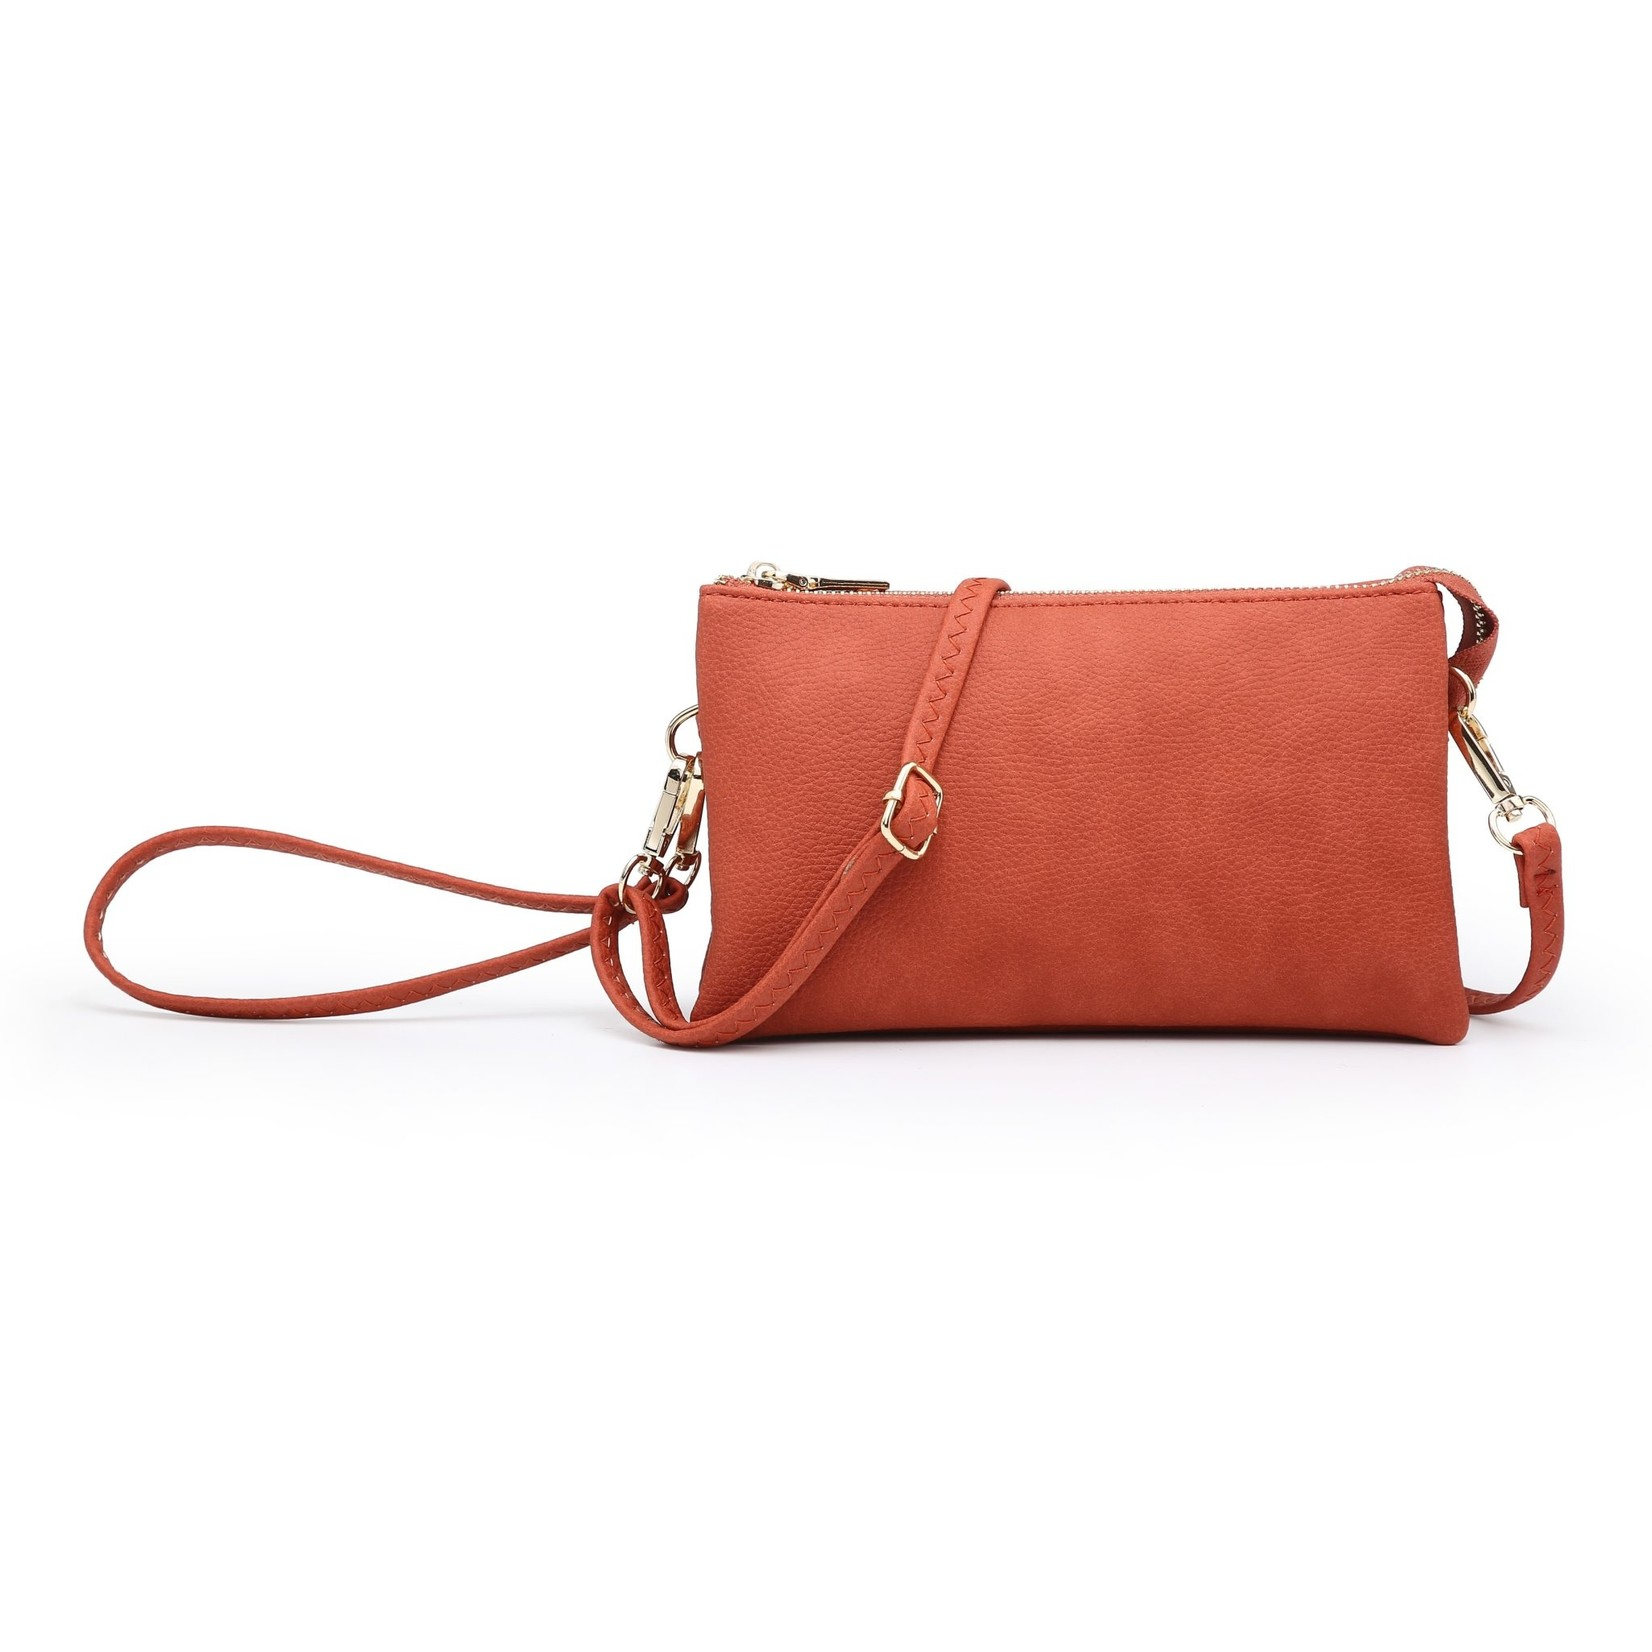 Riley - Vegan Leather Double-Sided Wristlet/Crossbody - Burnt Orange(BOR)